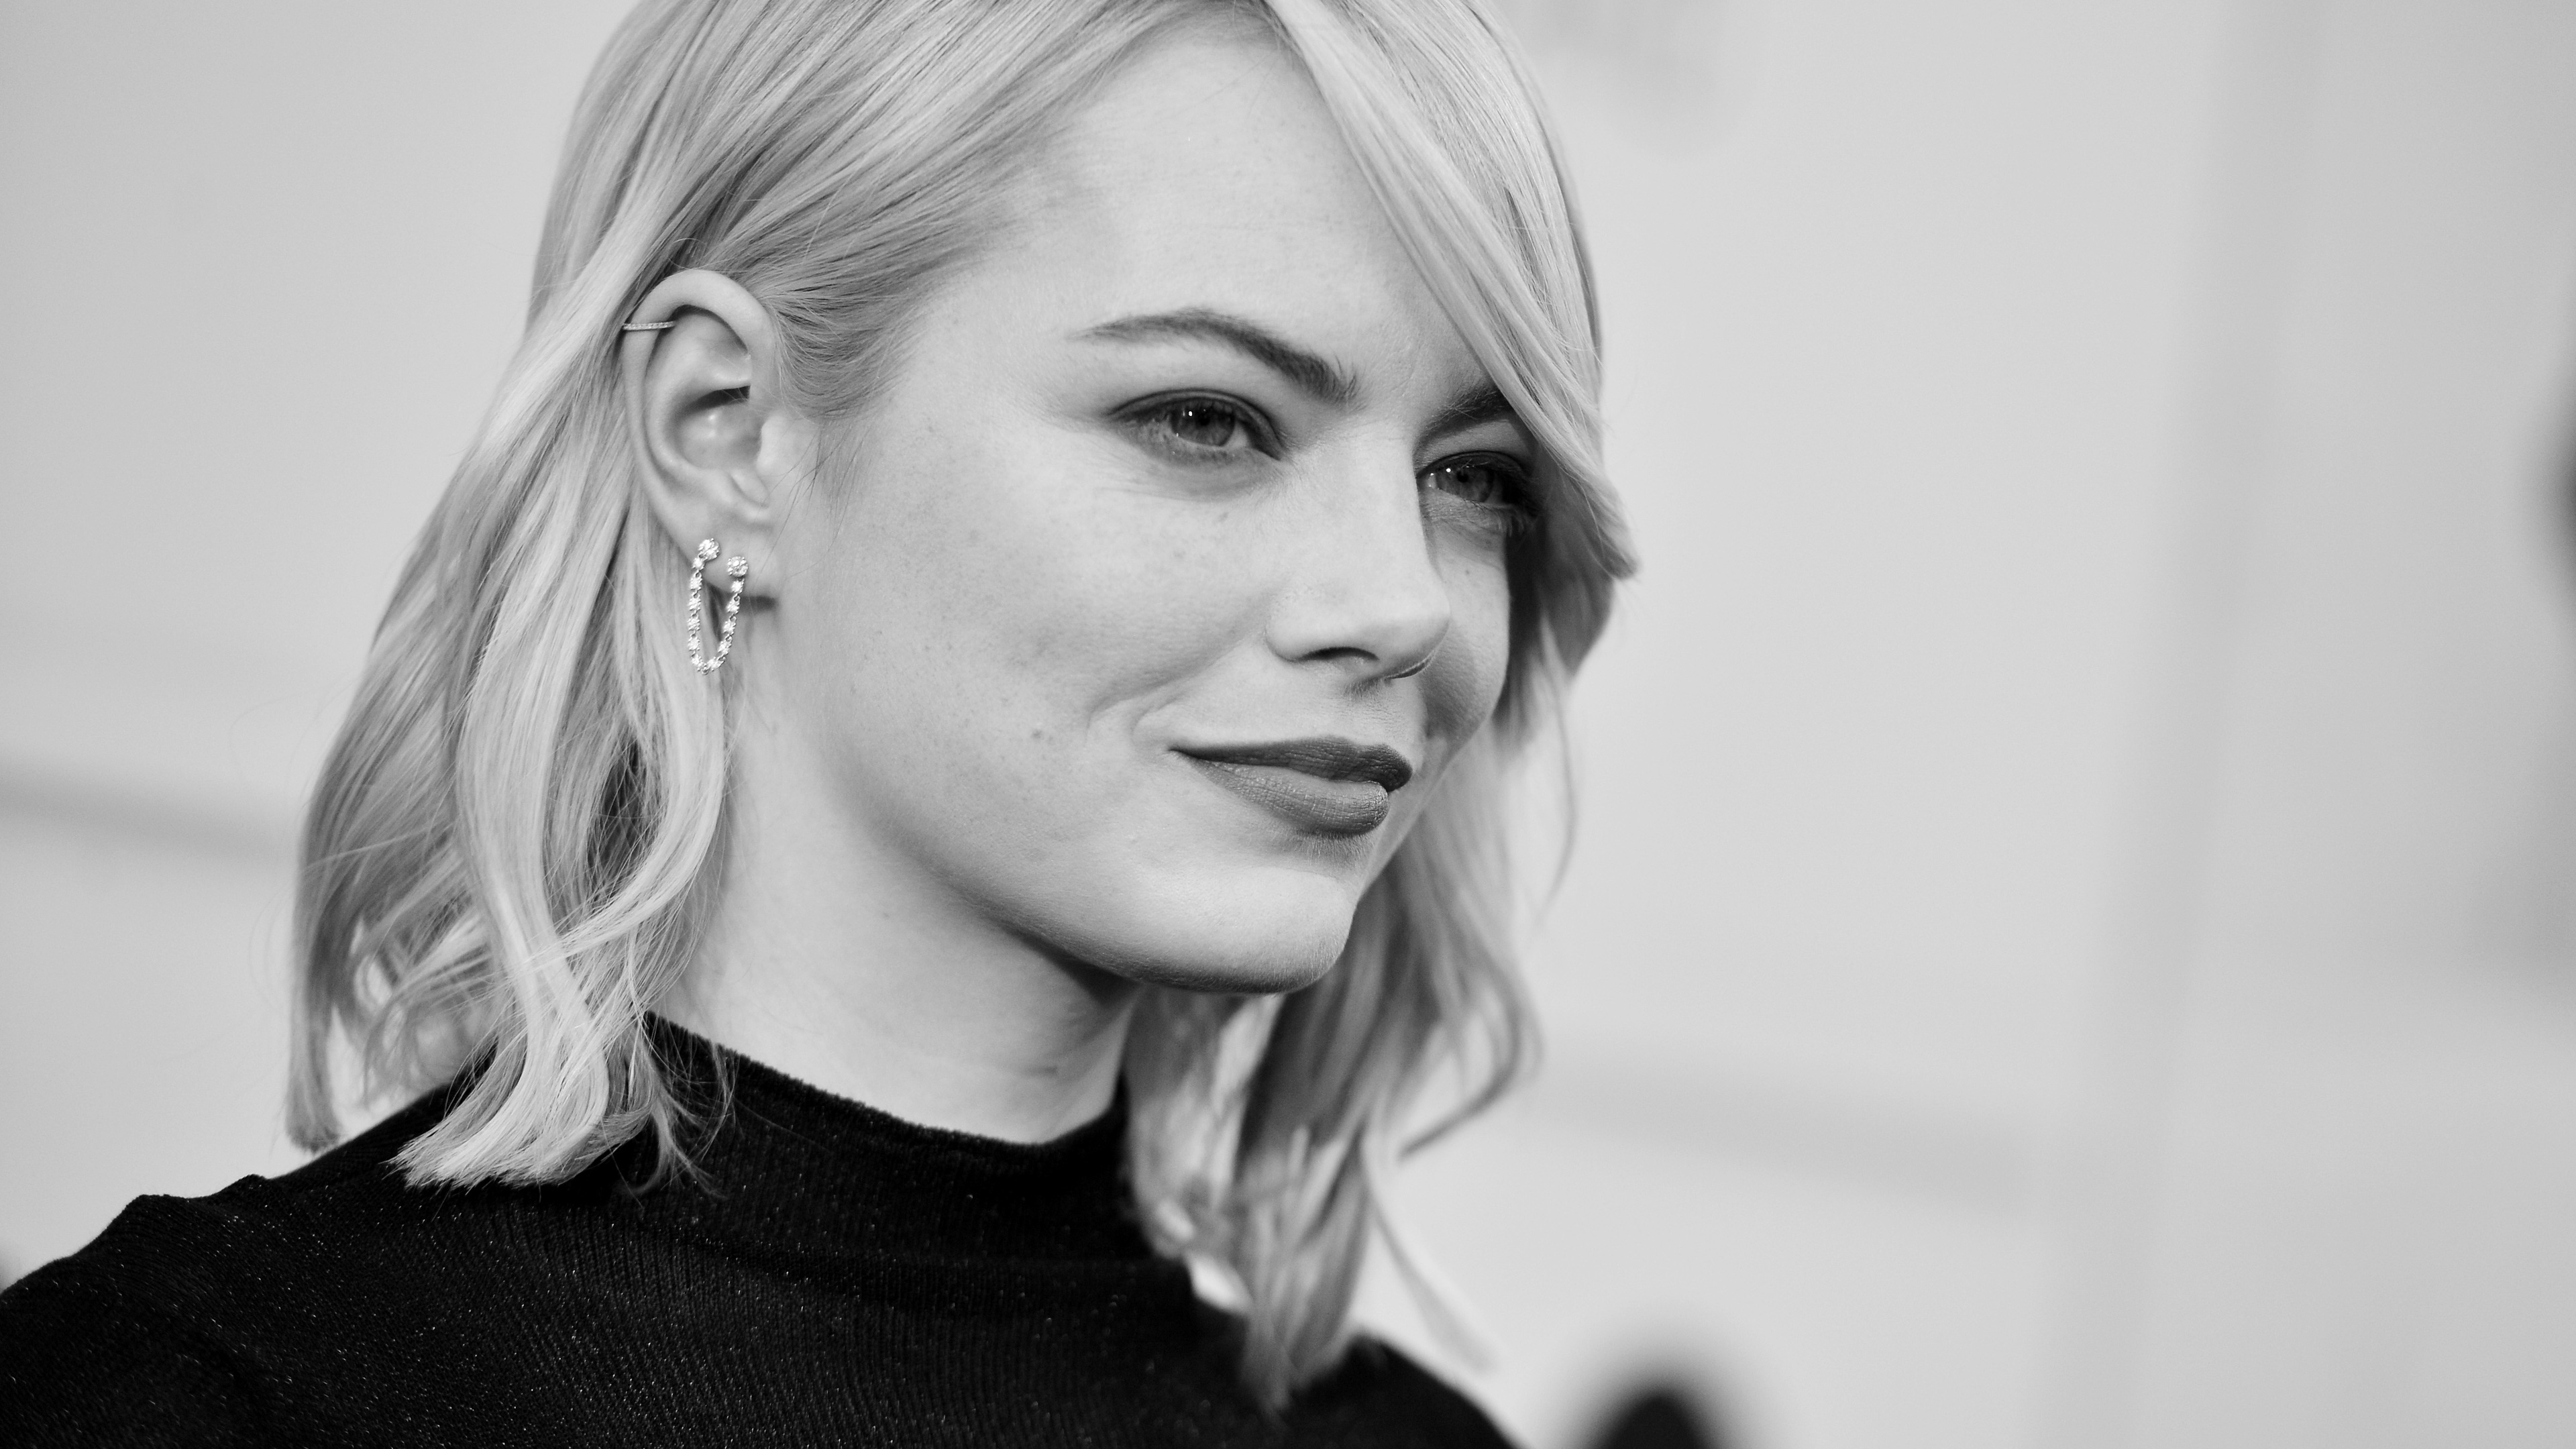 emma stone 2017 hd 1536859778 - Emma Stone 2017 HD - monochrome wallpapers, hd-wallpapers, girls wallpapers, emma stone wallpapers, celebrities wallpapers, black and white wallpapers, 5k wallpapers, 4k-wallpapers